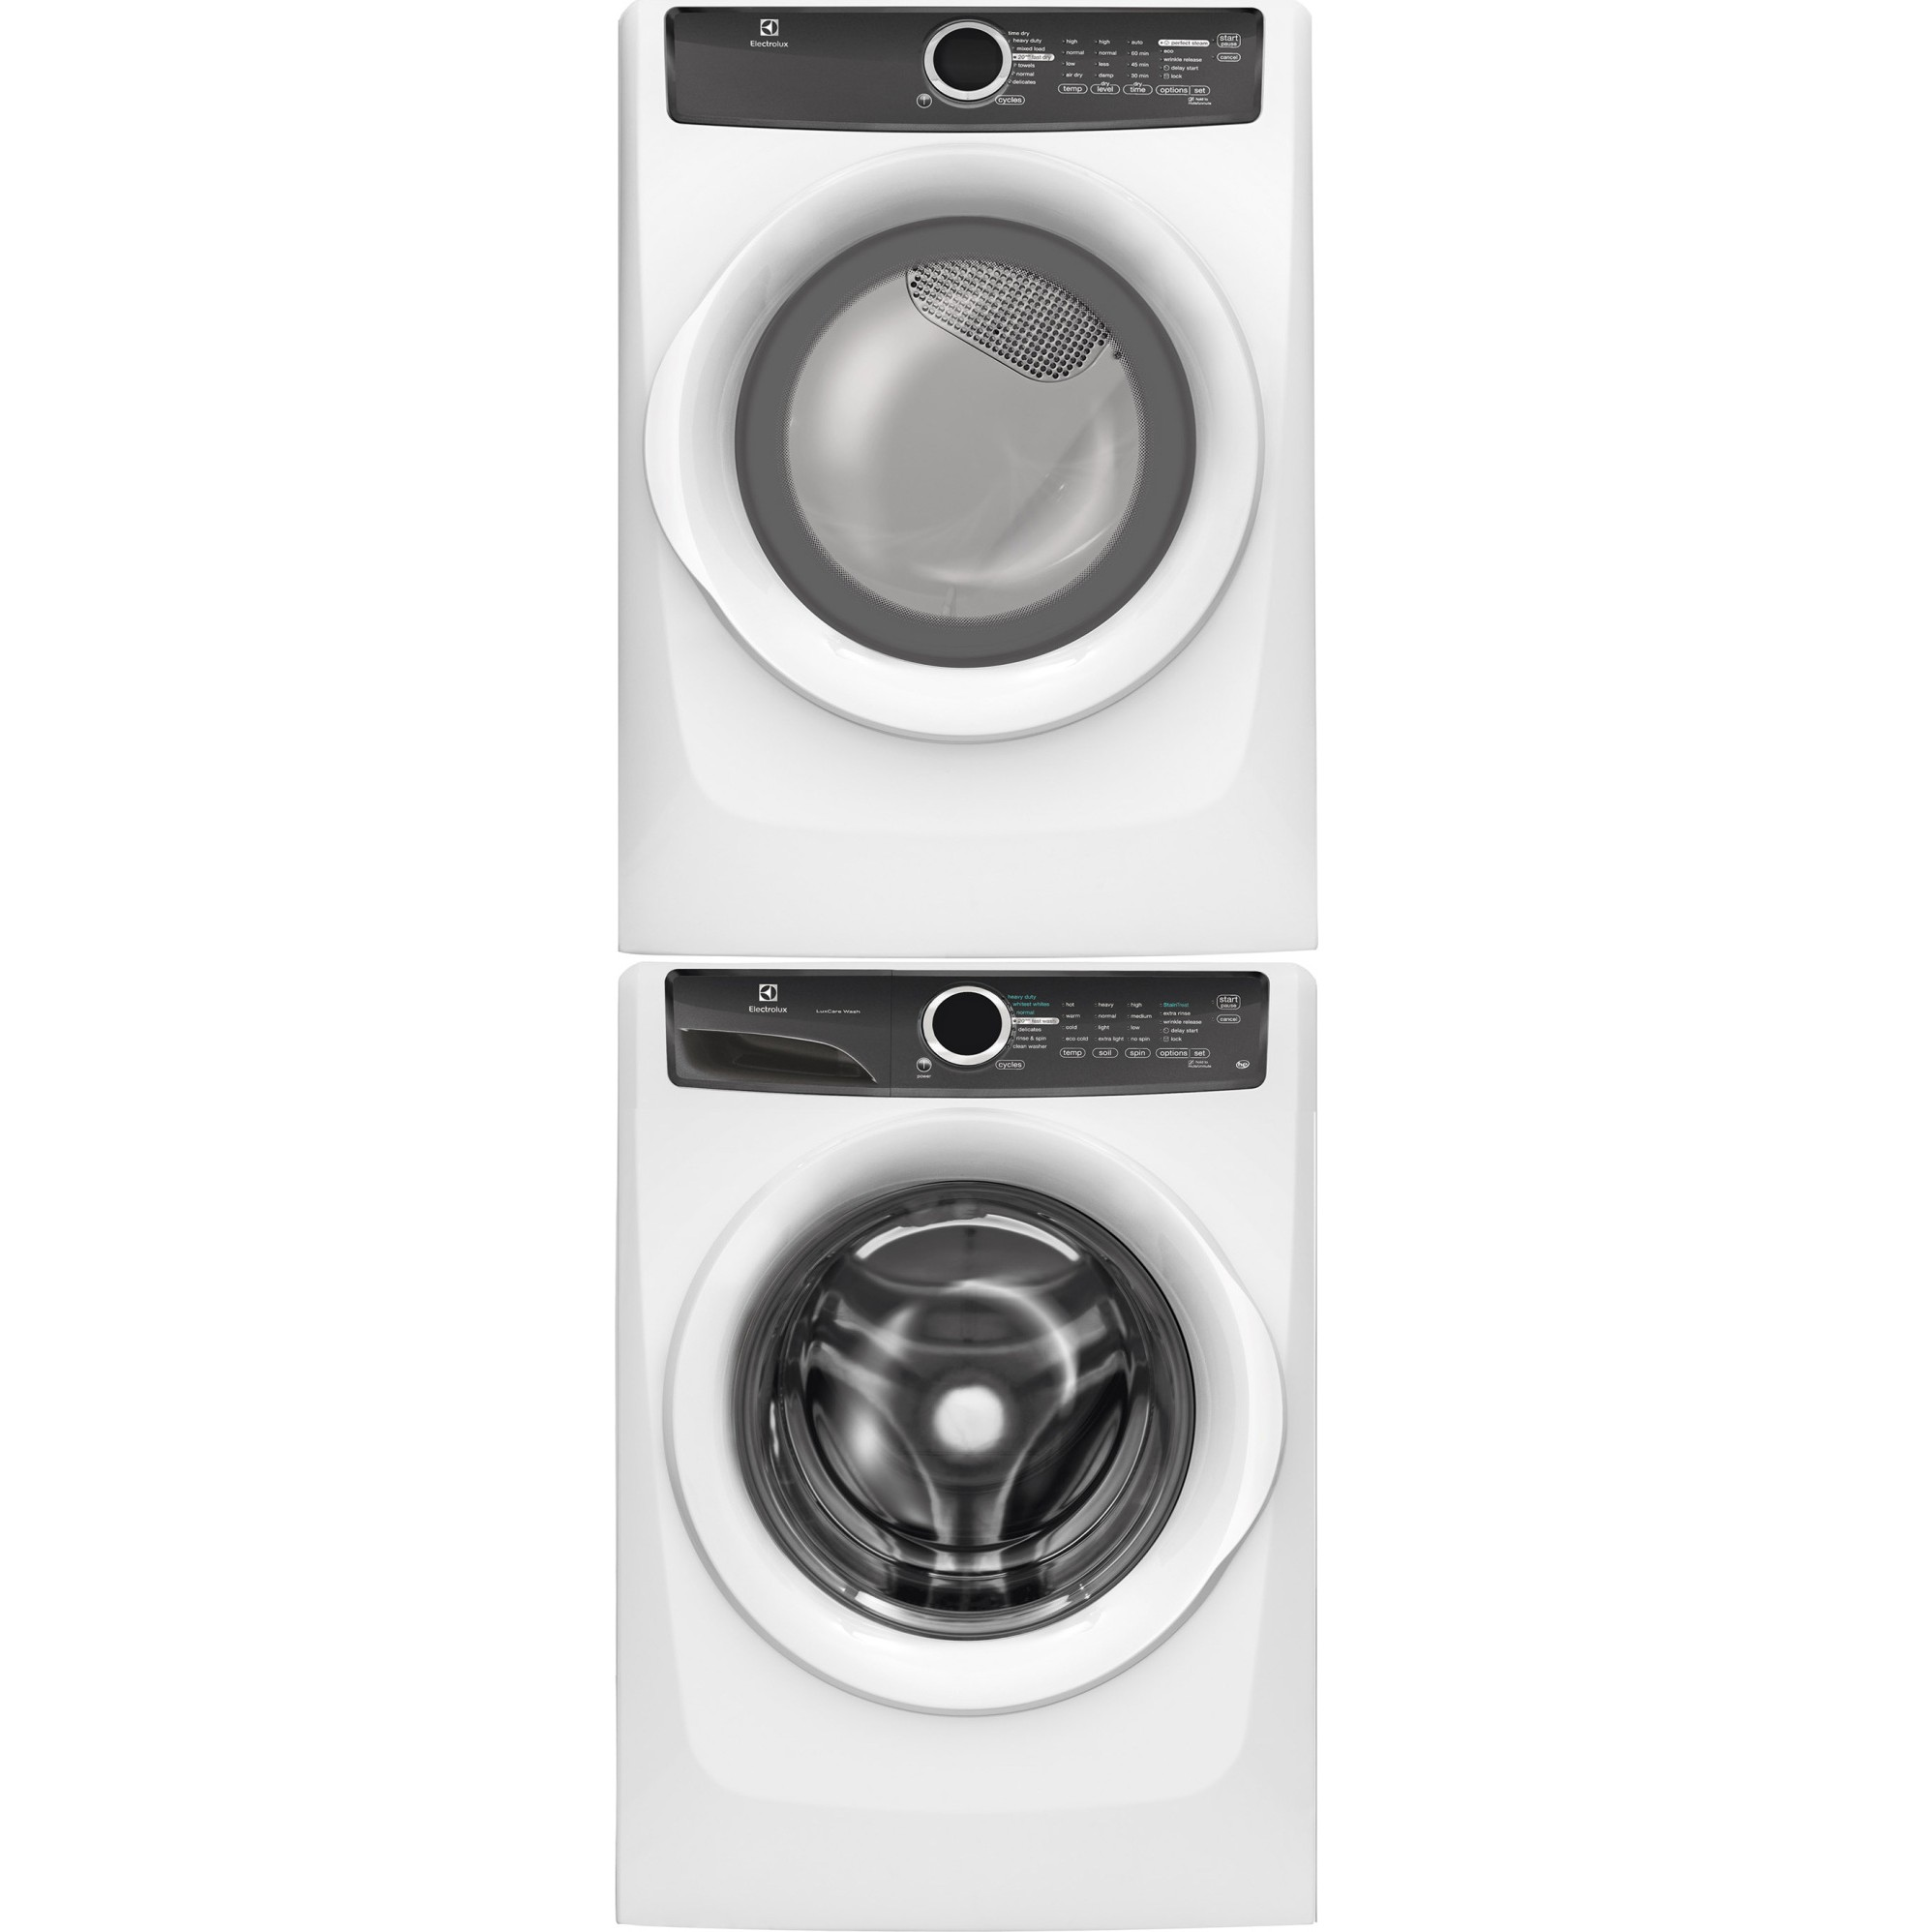 Electrolux eflw417siw front load washer efmg417siw gas Electrolux washer and dryer